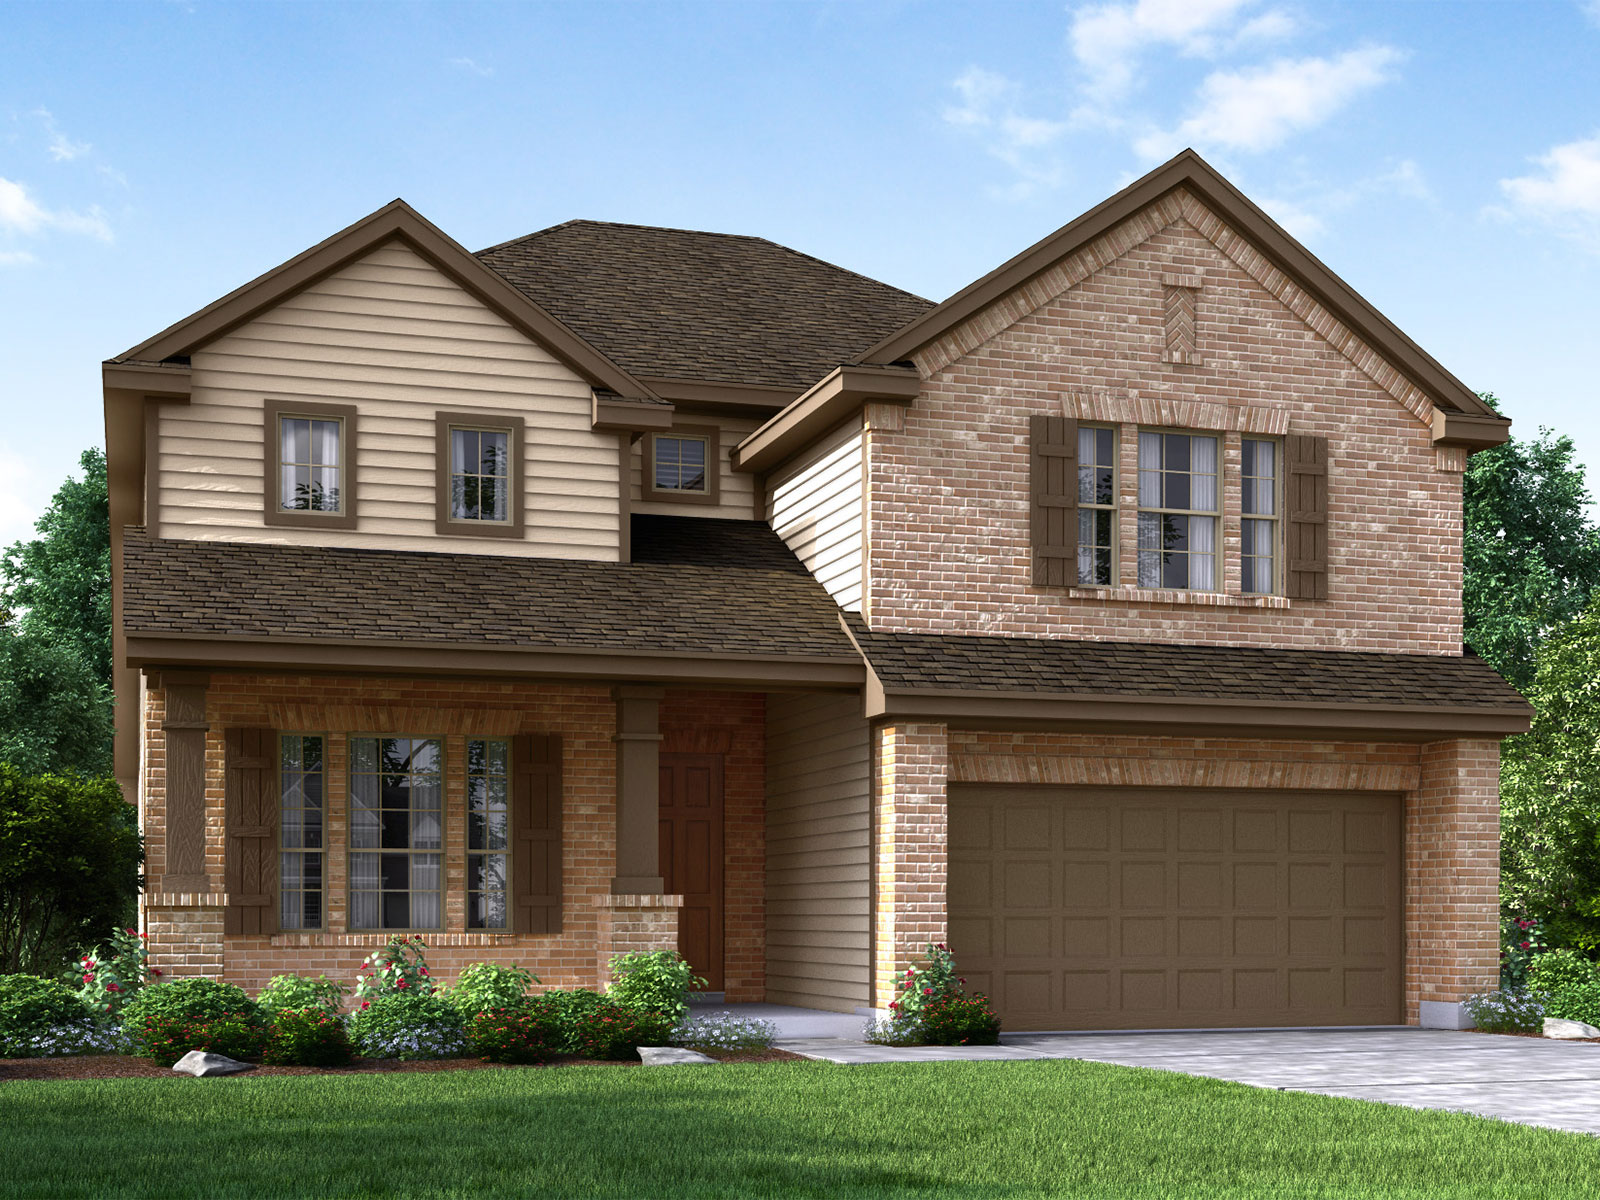 The Savannah 4K85 Model – 4BR 3BA Homes for Sale in Pearland TX